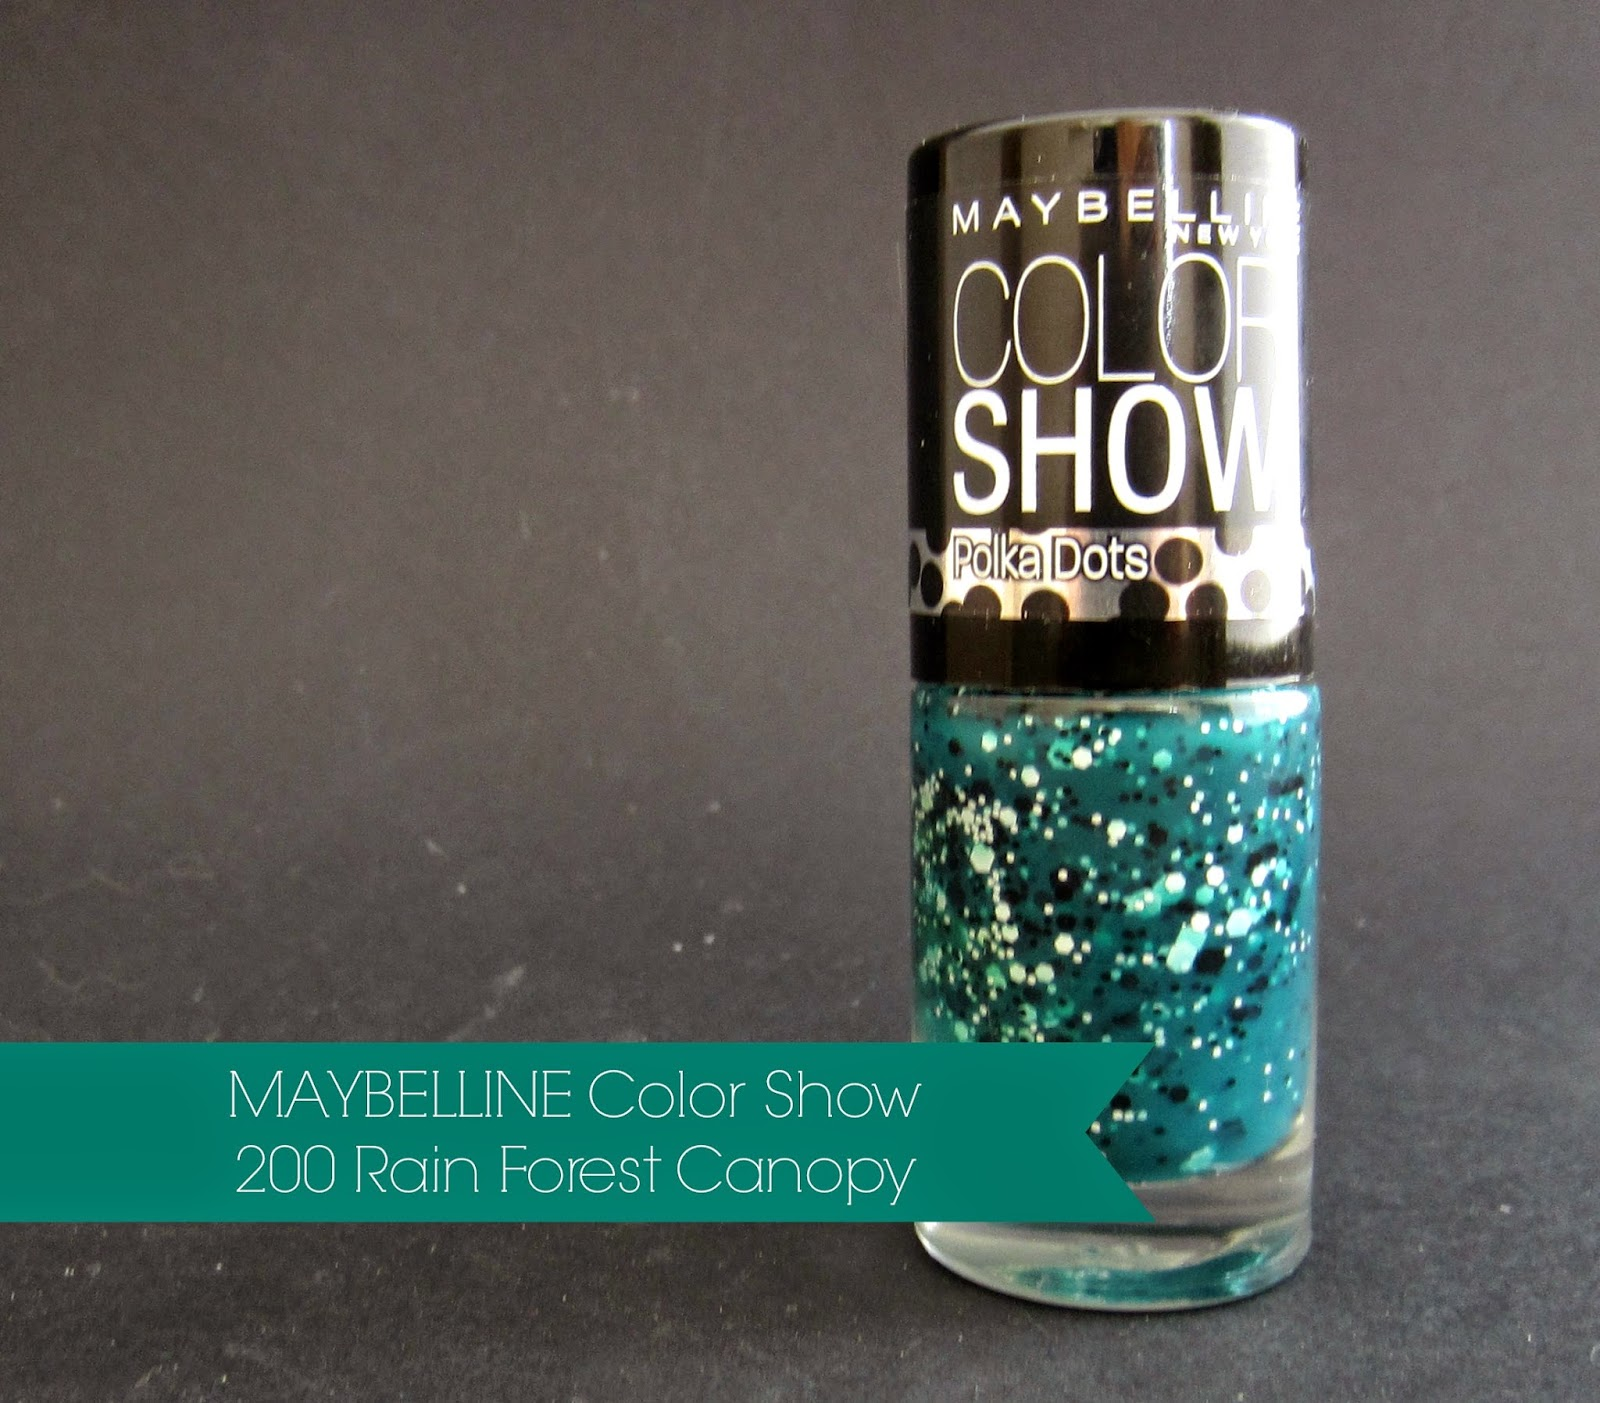 MAYBELLINE - Rain Forest Canopy